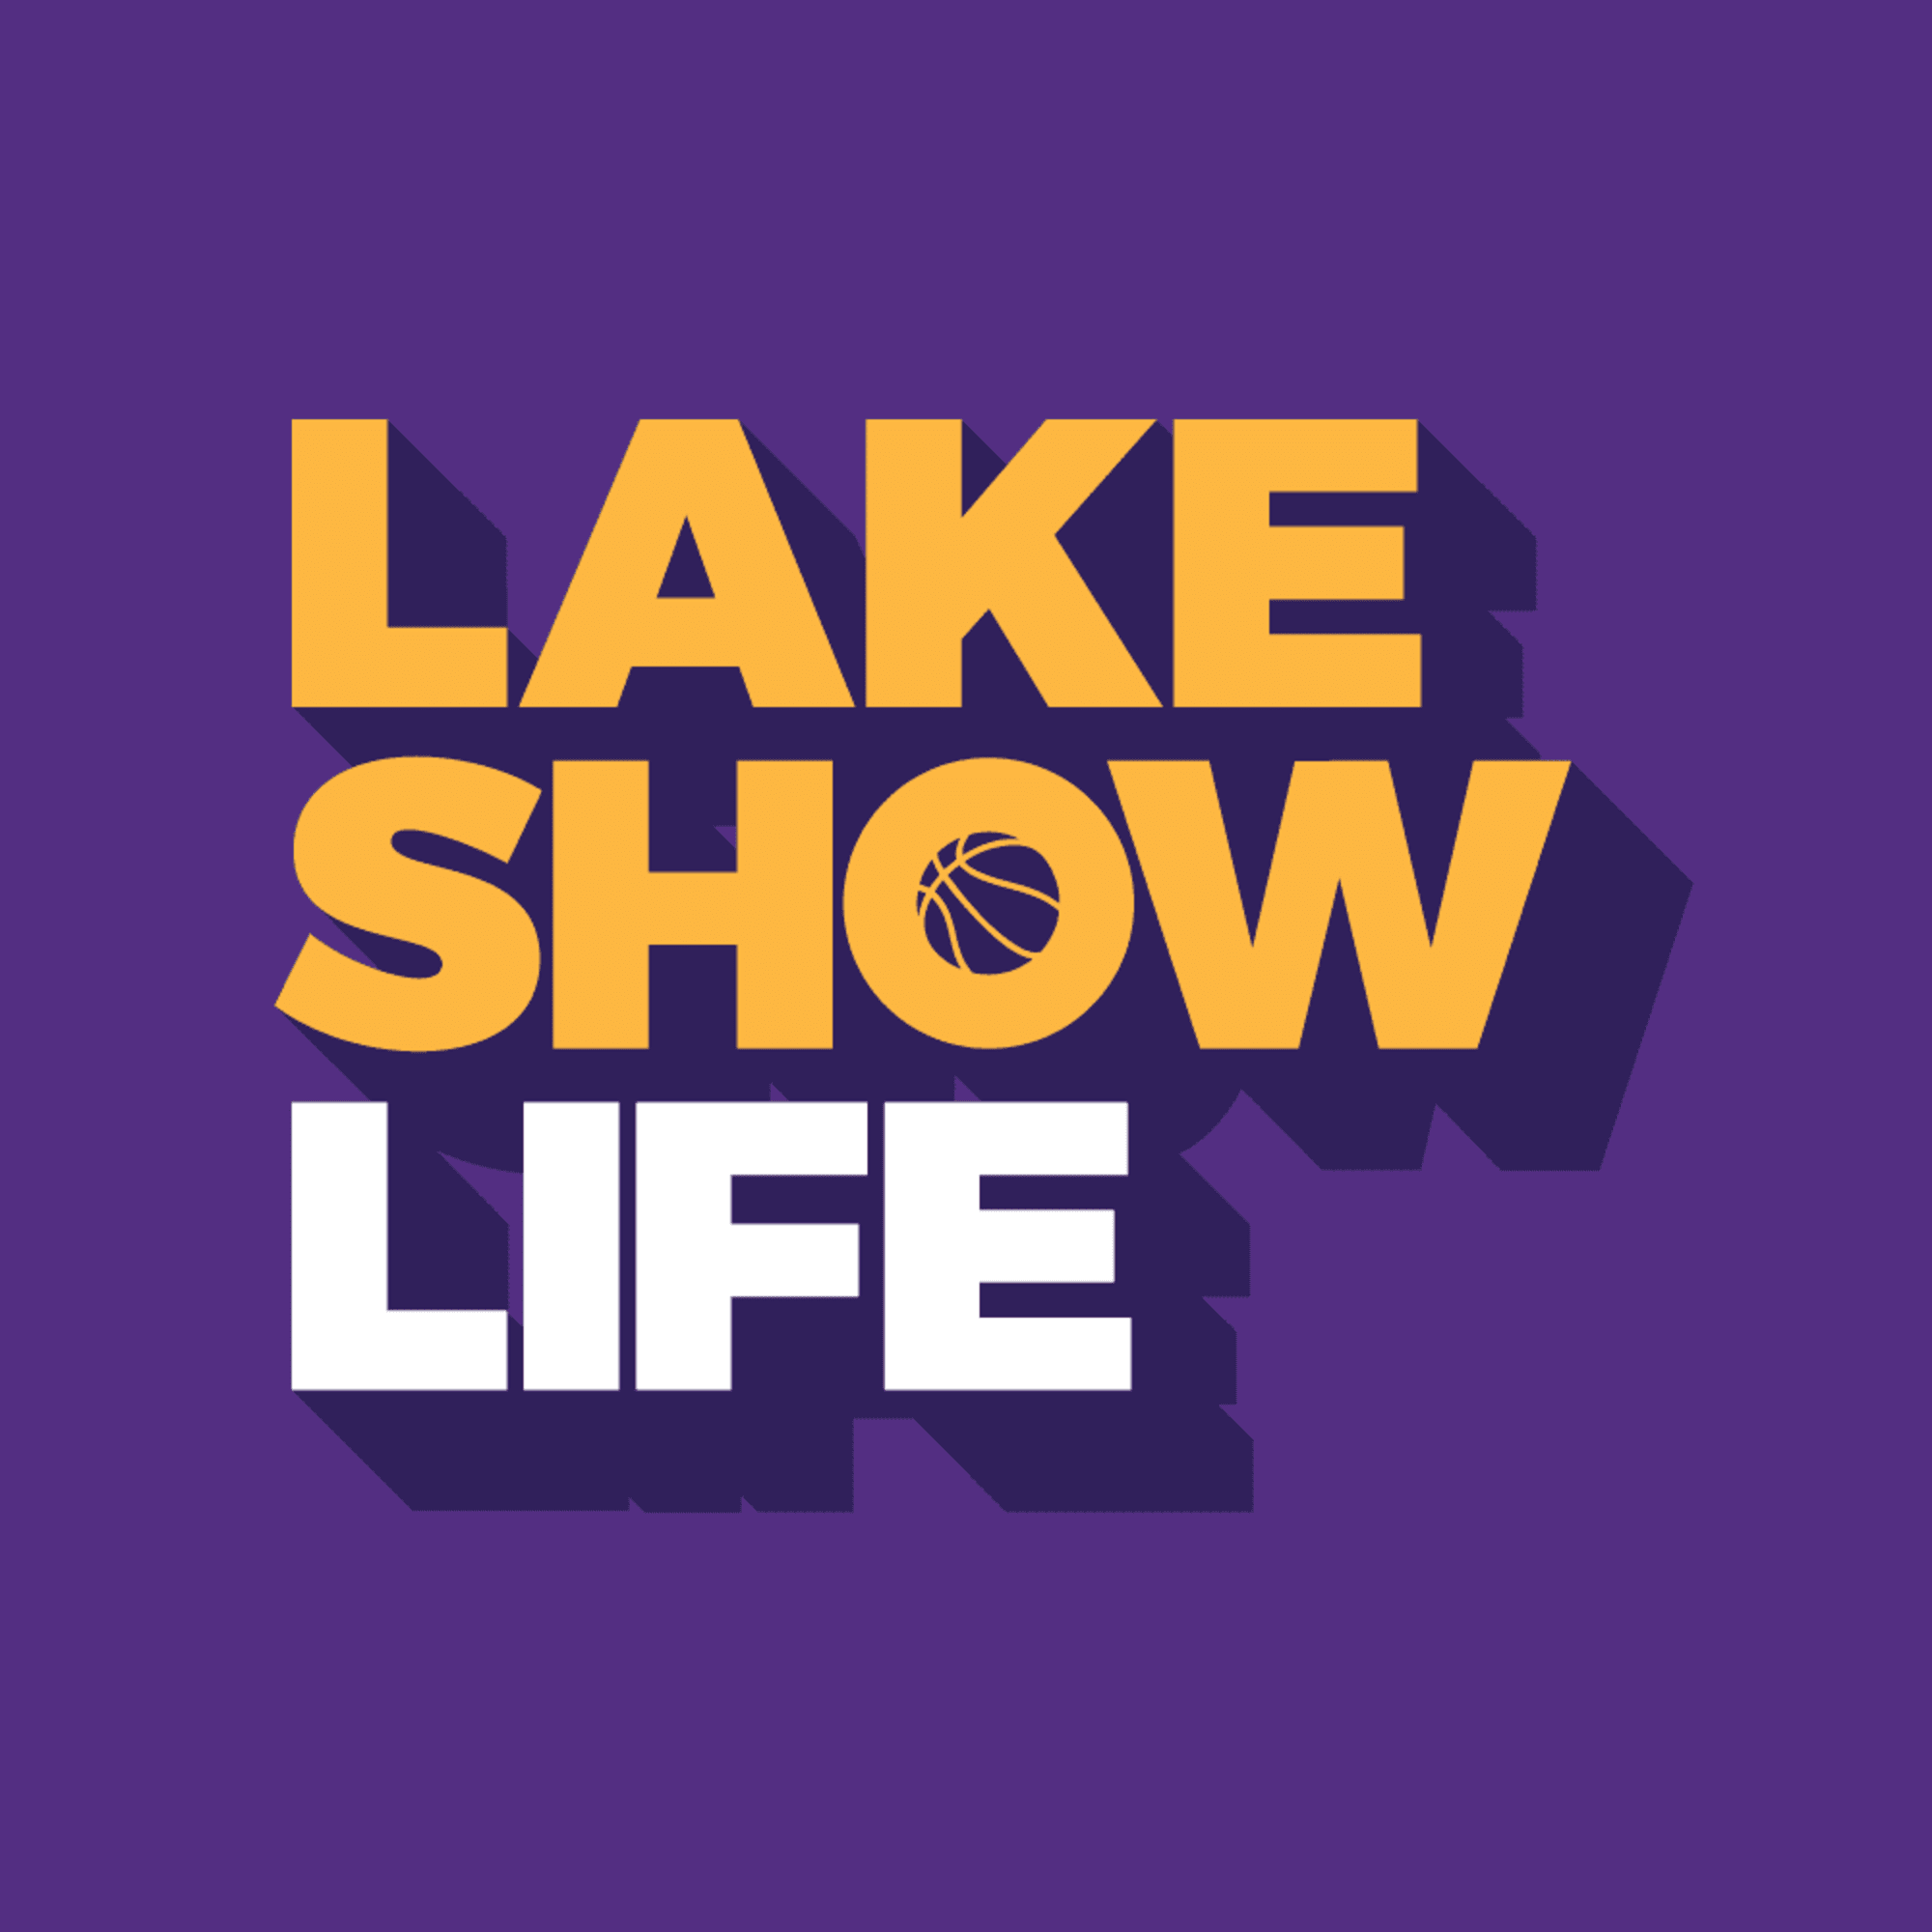 Los Angeles Lakers News And Fan Community Lake Show Life